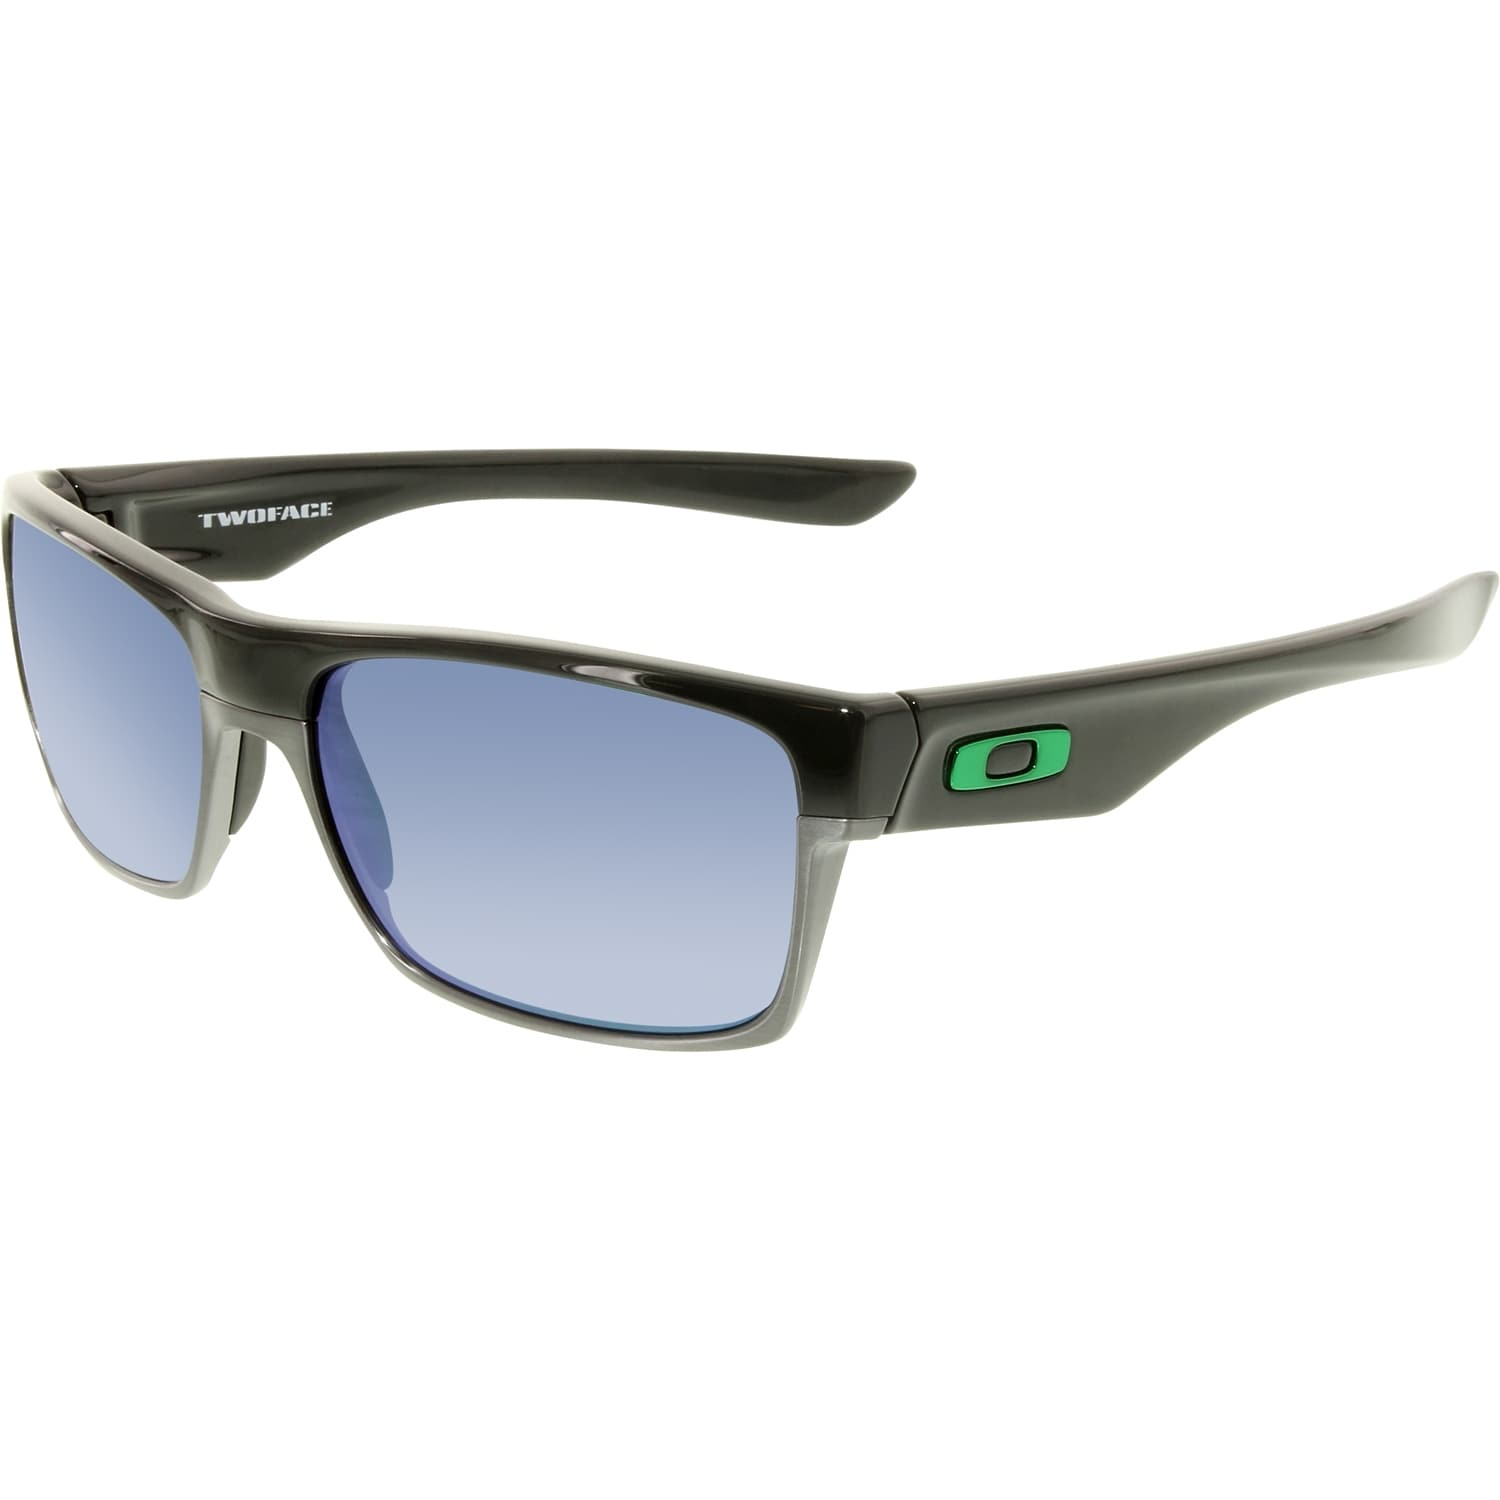 107074d0b3 Shop Oakley Men s Twoface OO9189-04 Black Square Sunglasses - Free ...